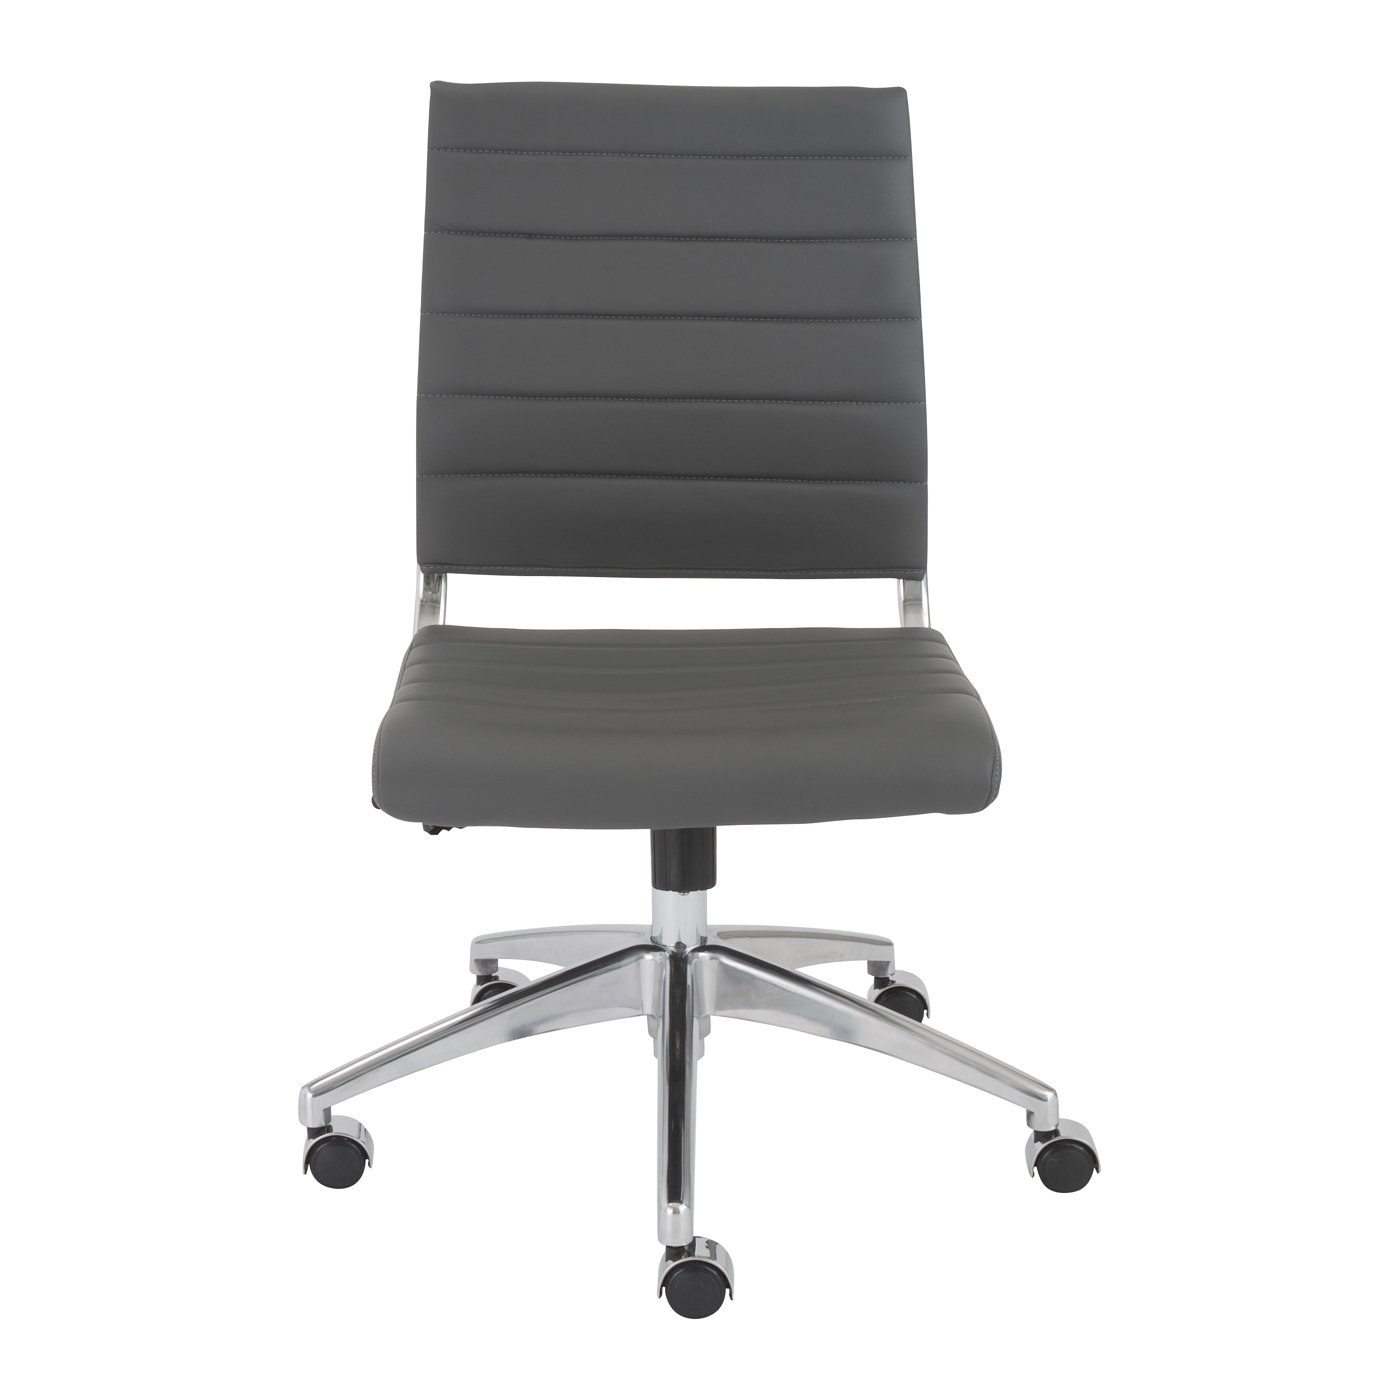 Low Back Office Chair Axel Low Back Office Chair With Gray Leatherette Upholstery By Euro Style